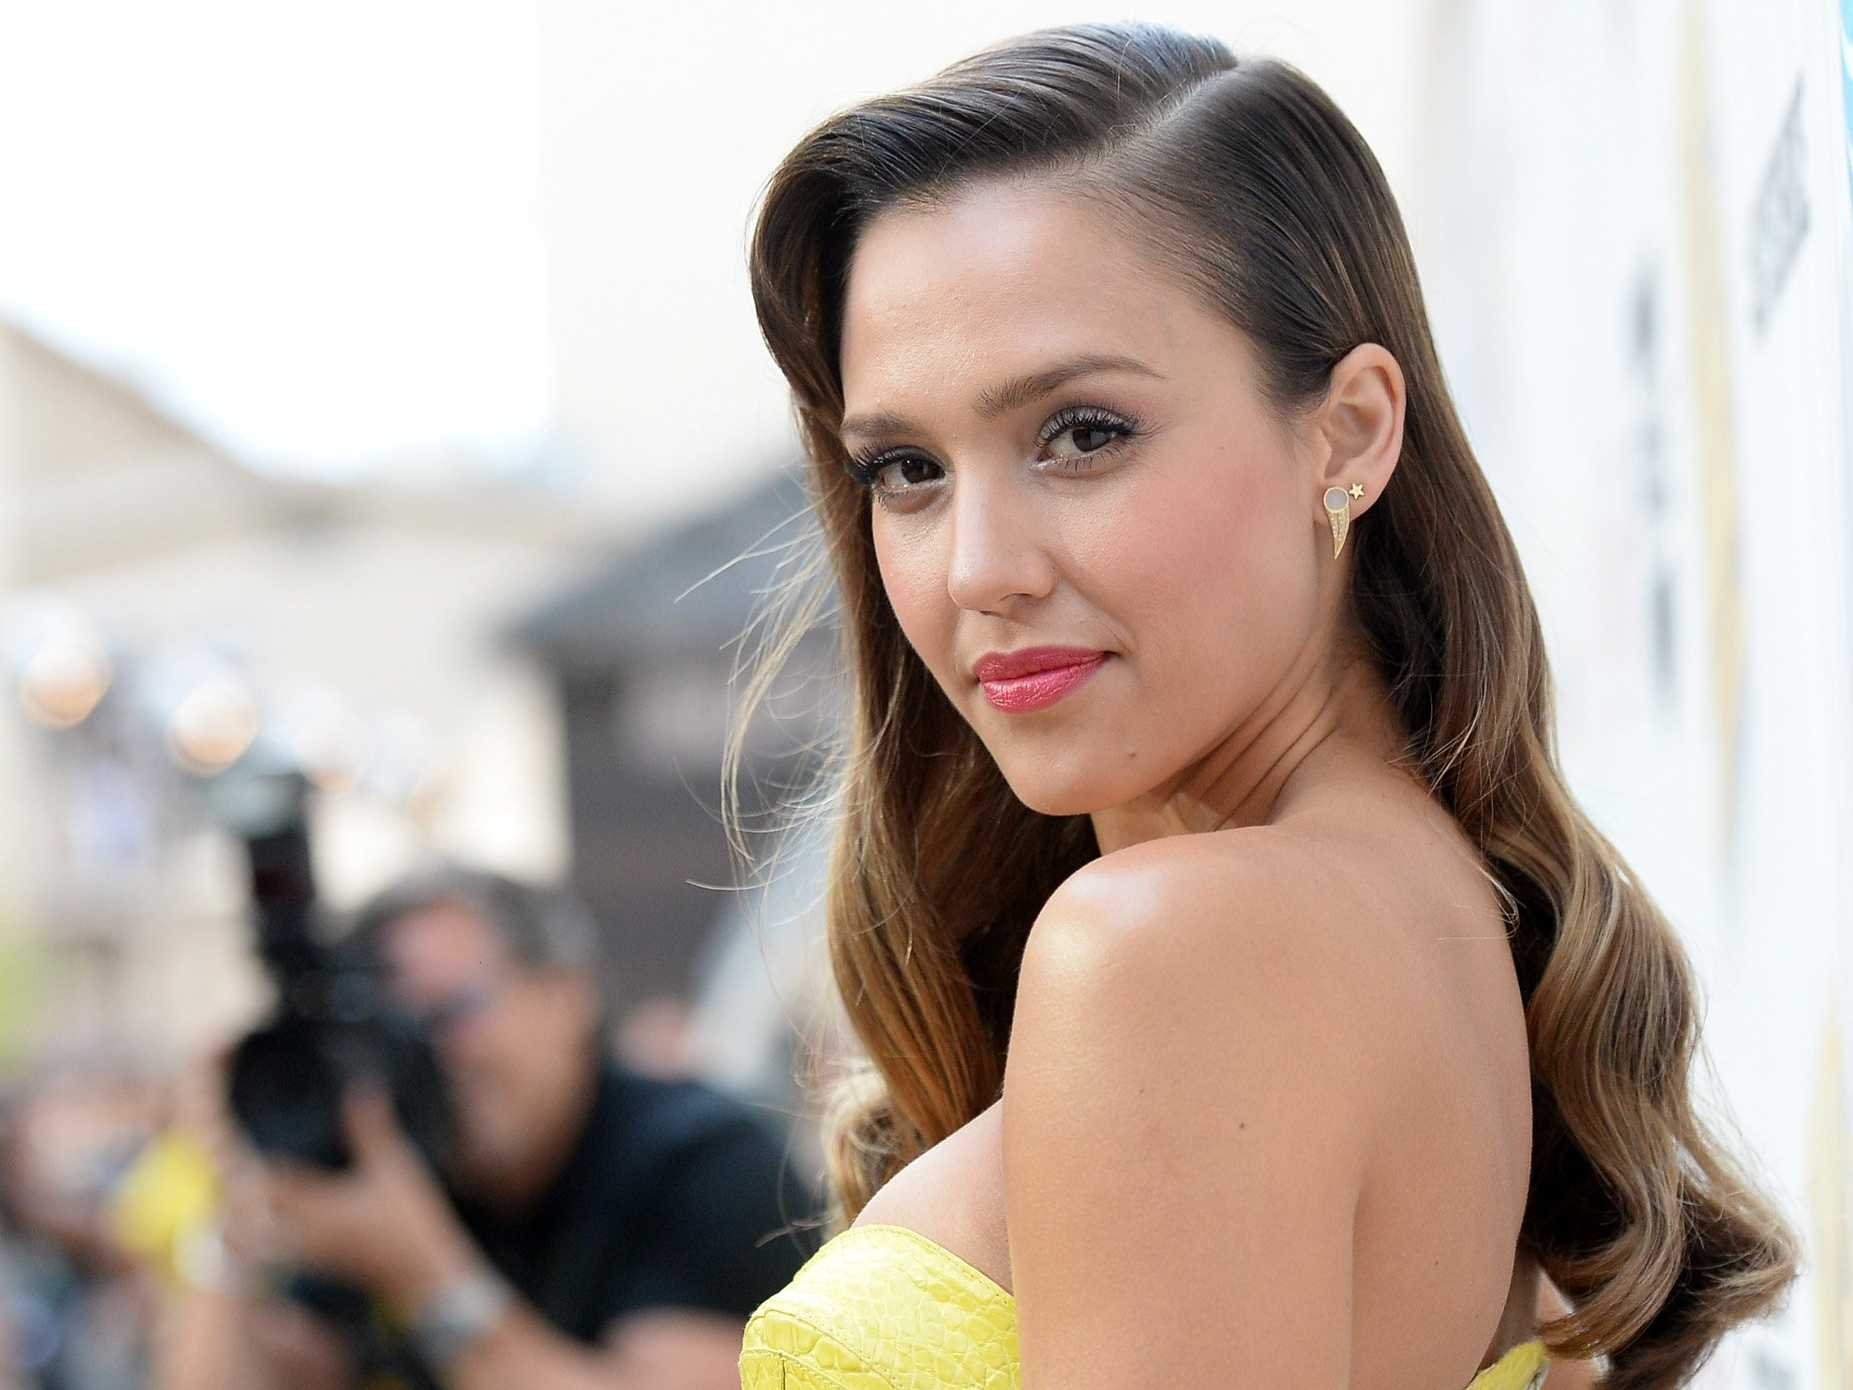 how-trying-to-make-it-as-an-actor-helped-prepare-jessica-alba-to-build-a-17-billion-startup